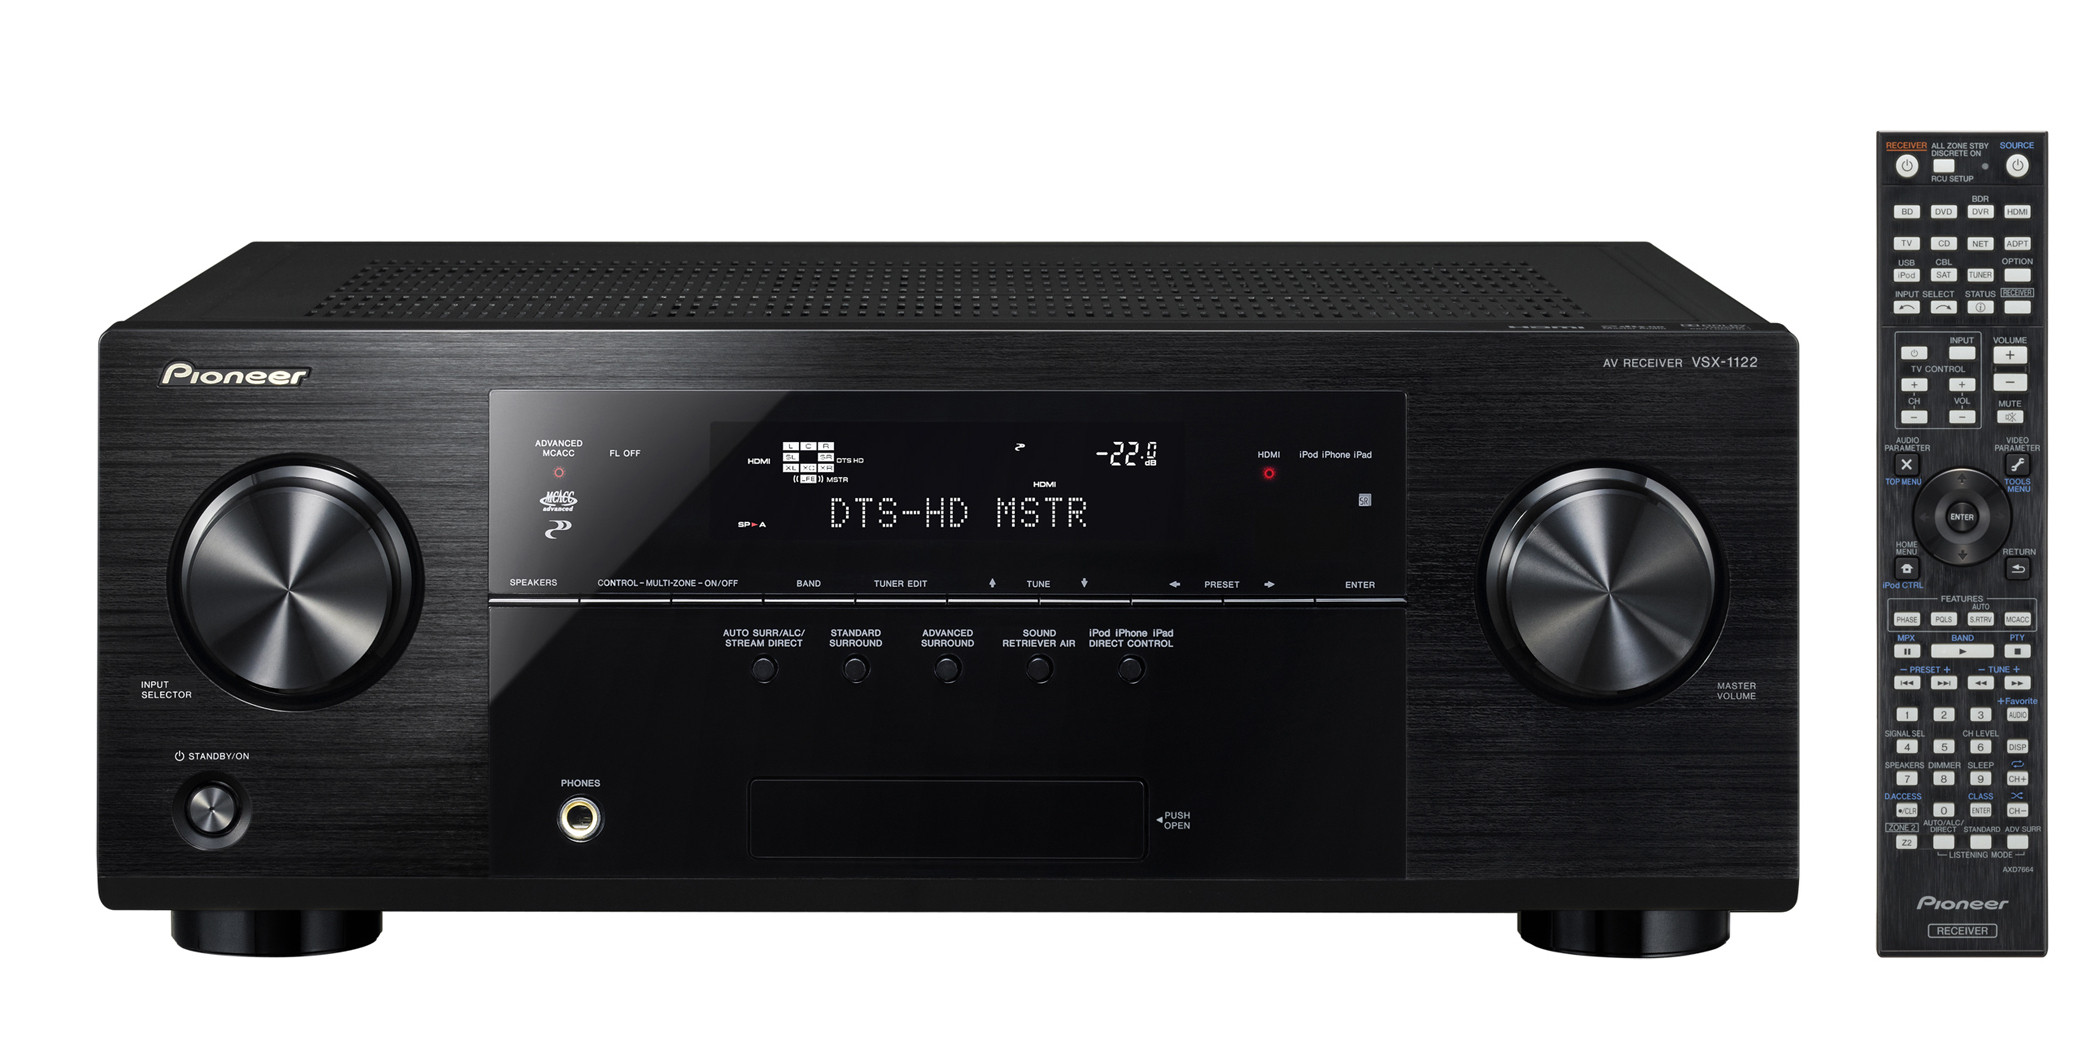 The Best Home Theater Av Receiver Tested Making 51 Surround Amplifier Pioneer Isnt To Be Singled Out Either As I Mentioned Earlier Onkyo Has Radically Shifted Their Prices And What They Offer For That Price This Year